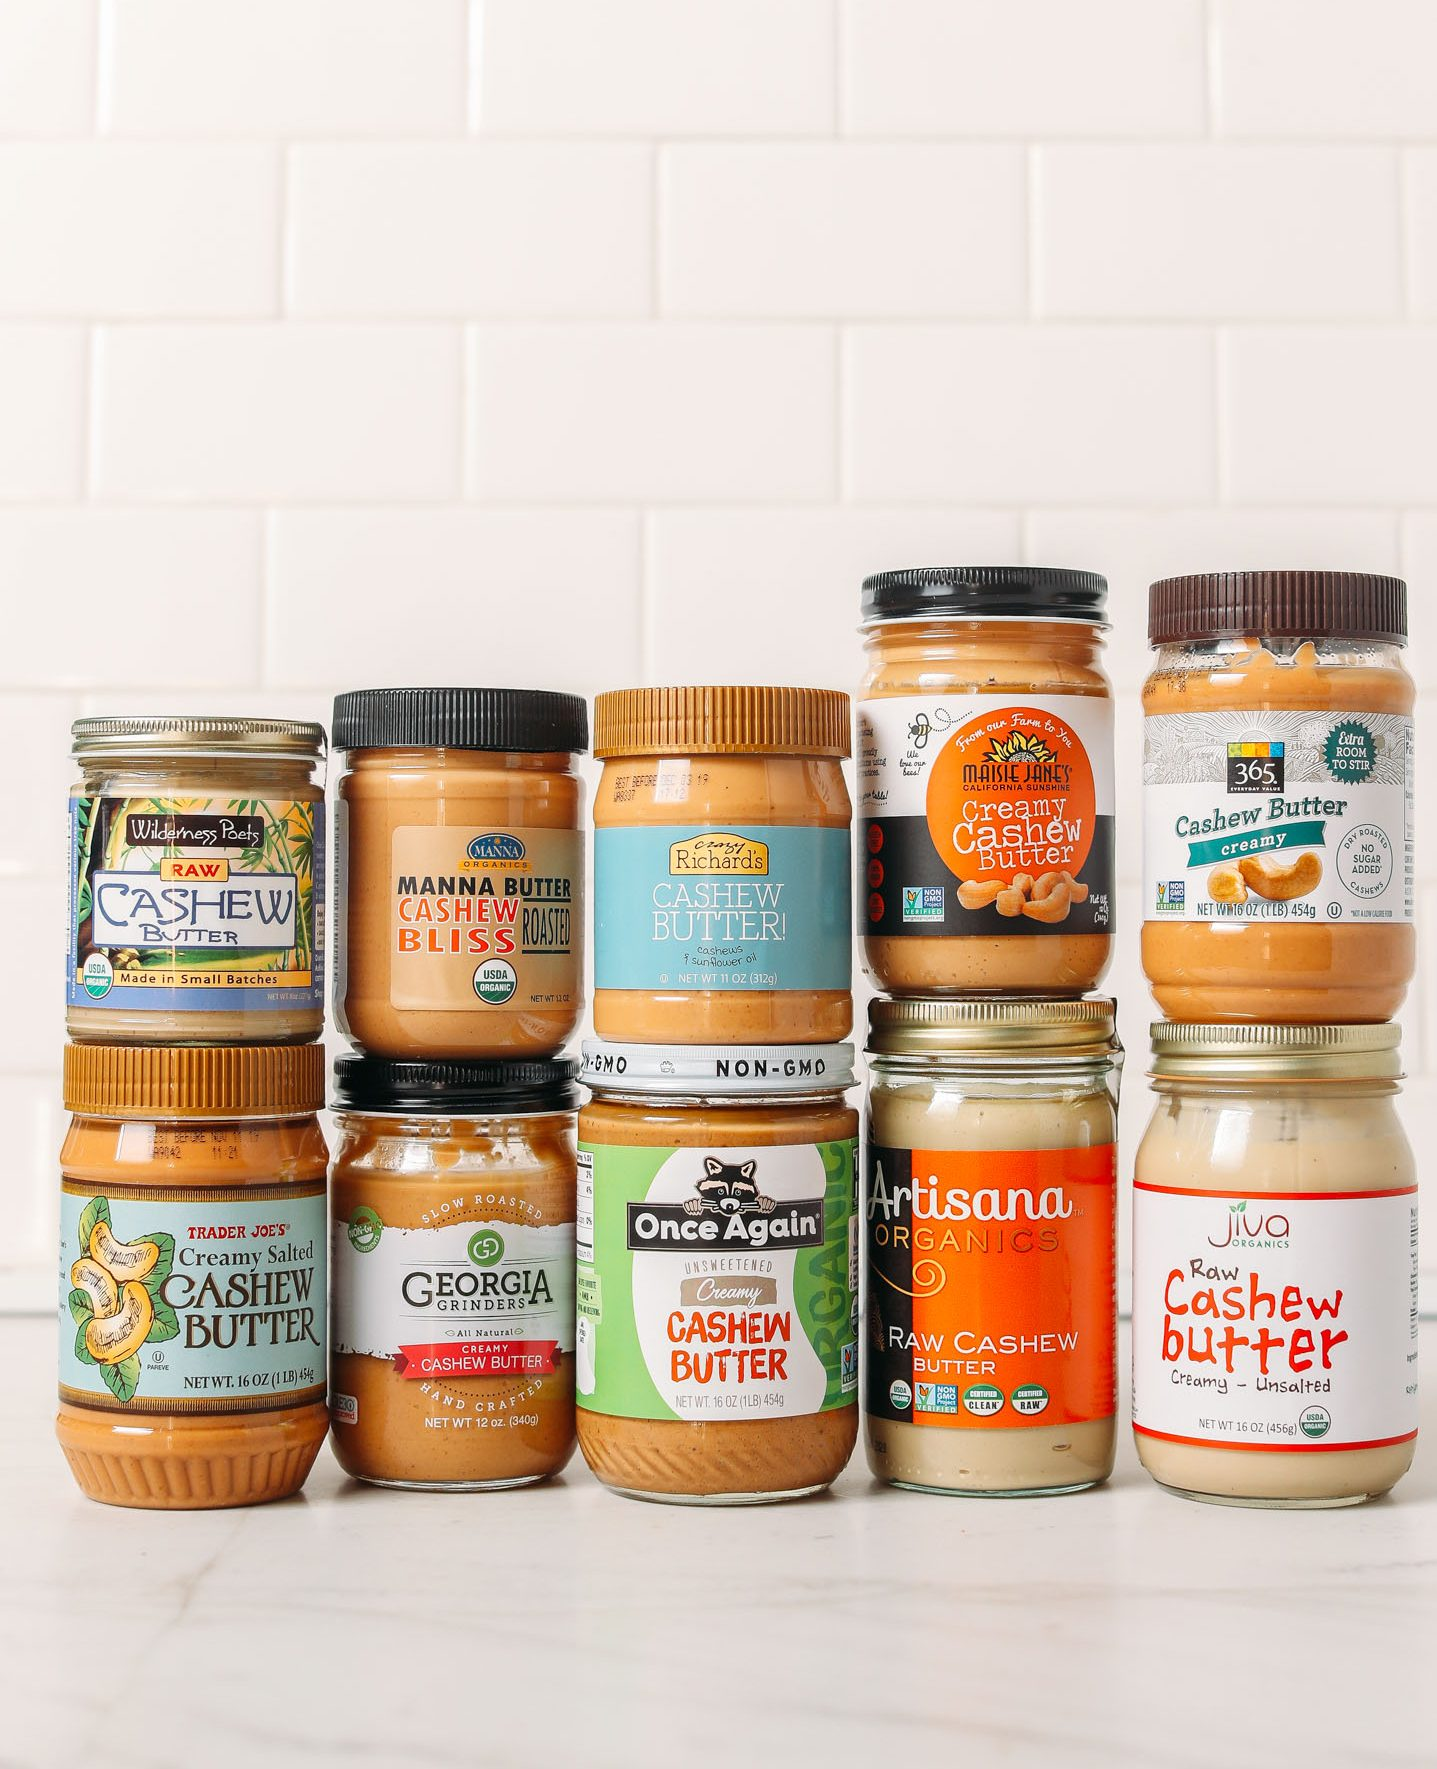 Jars of various brands of cashew butter for our unbiased review